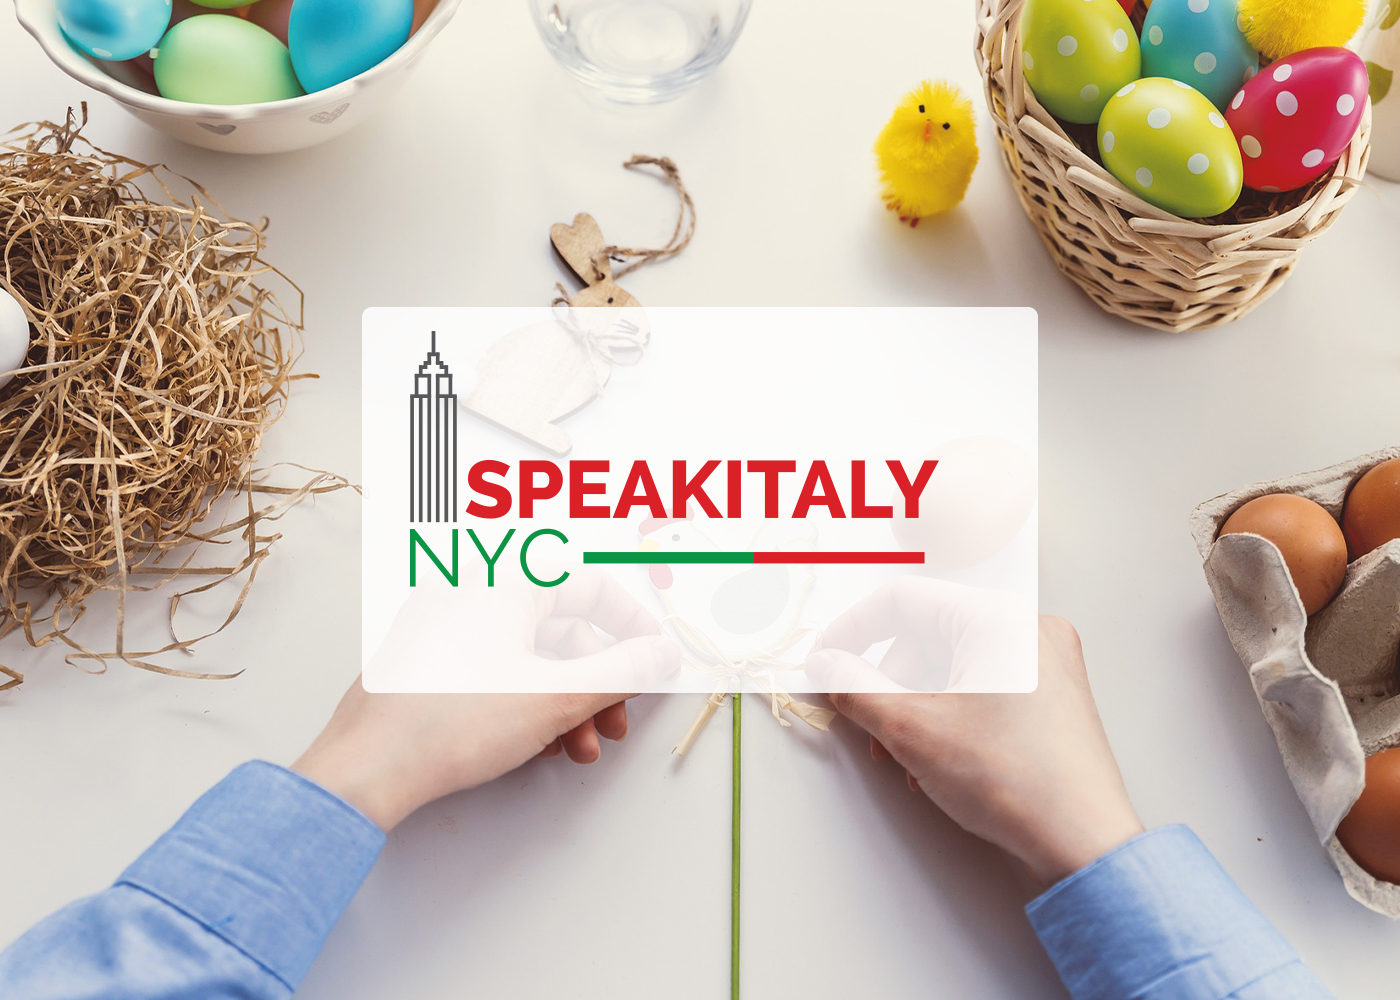 ONLINE Easter Eggs and Decoration Workshop at Speakitaly NYC